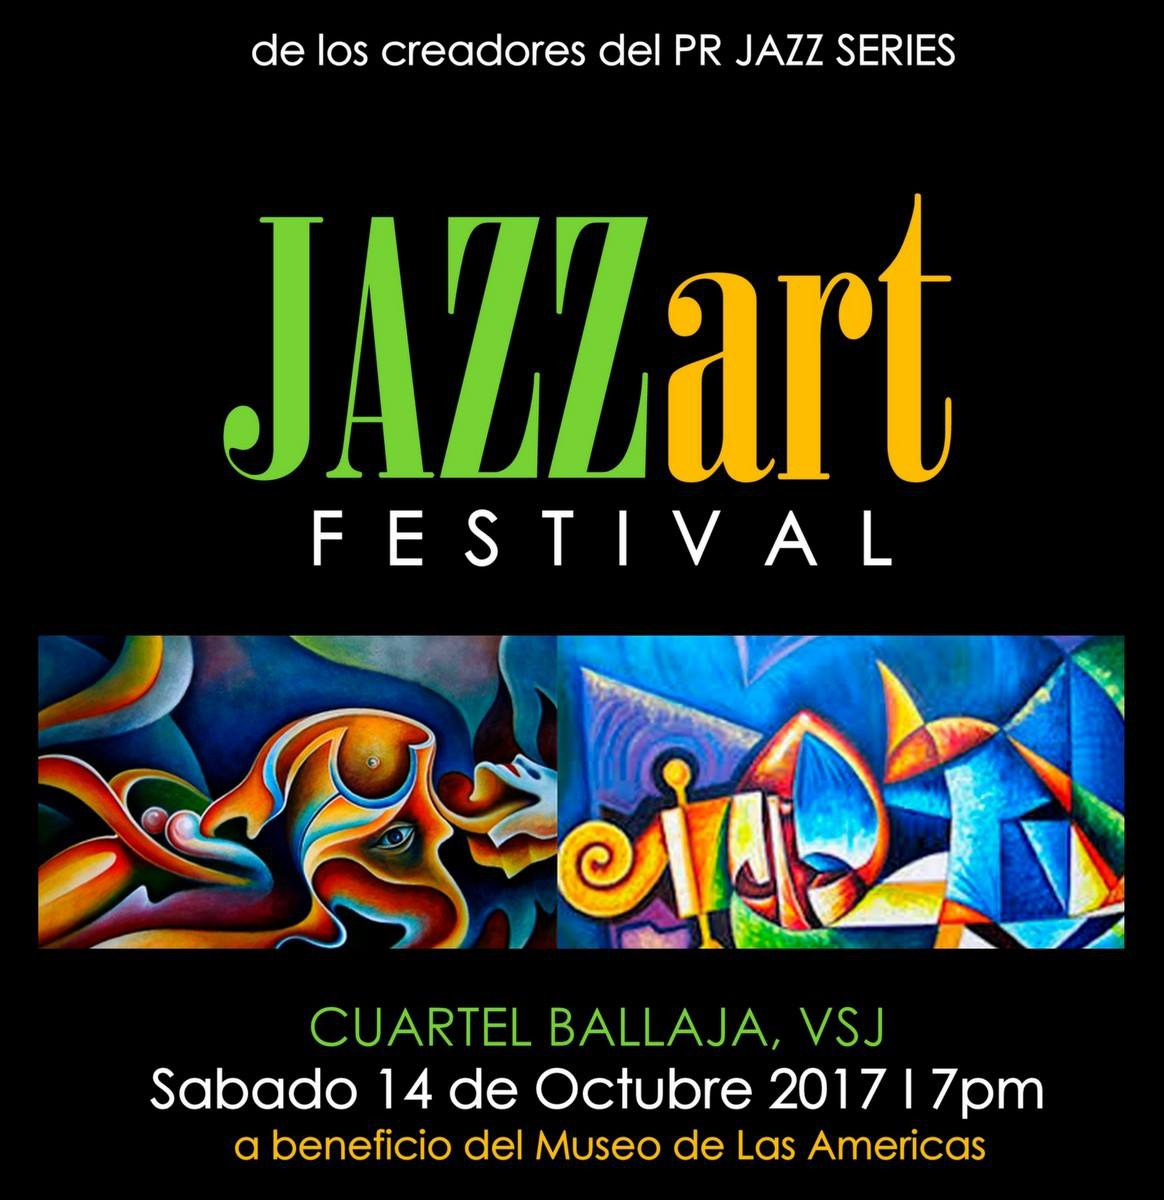 jazz art, culinary and music event in san juan, puerto rico